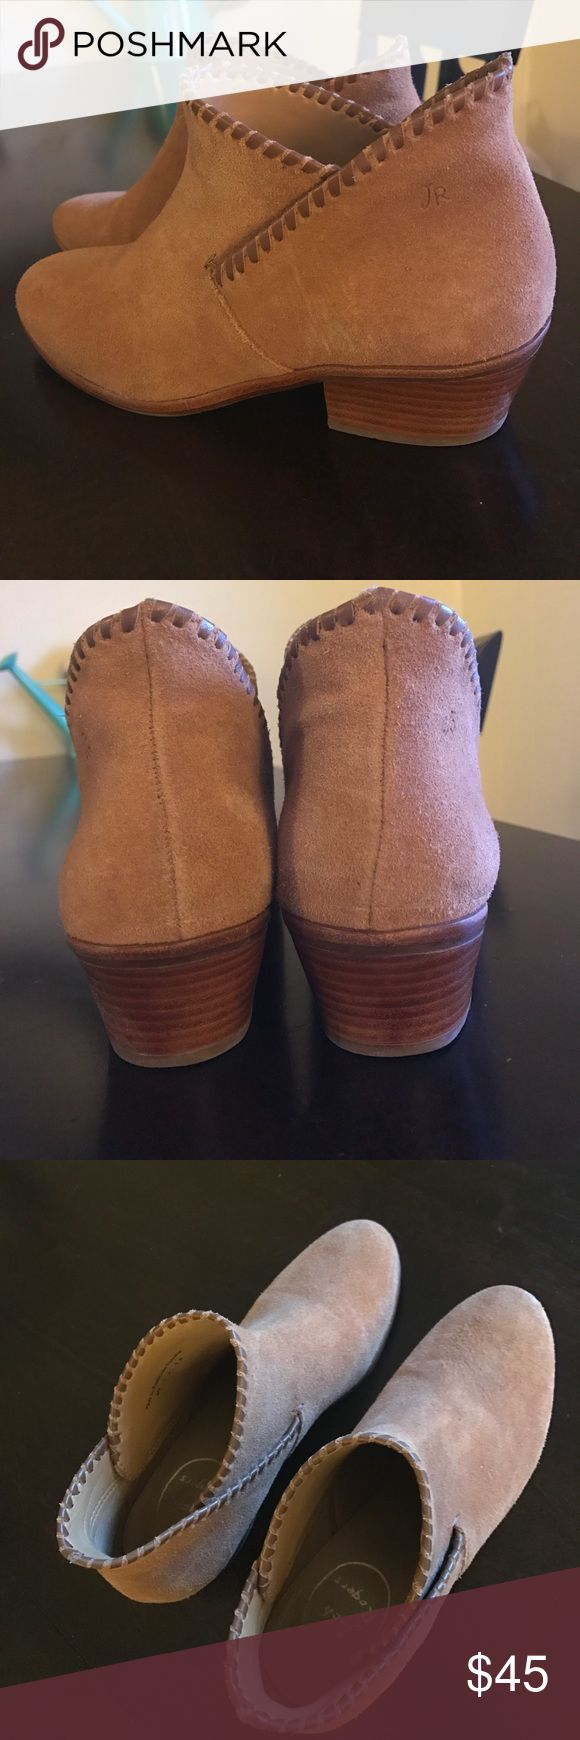 Jack Rogers tan booties🐰 Sadie suede bootie!! Size 6, worn twice, in great condition!! Suede - Tan color with leather detail around ankle, they look great with skinny jeans, very comfortable bootie with a timeless appeal🤗 Retail $148😮 ❌NO - discoloration tears or scuffs❌ Jack Rogers Shoes Ankle Boots & Booties